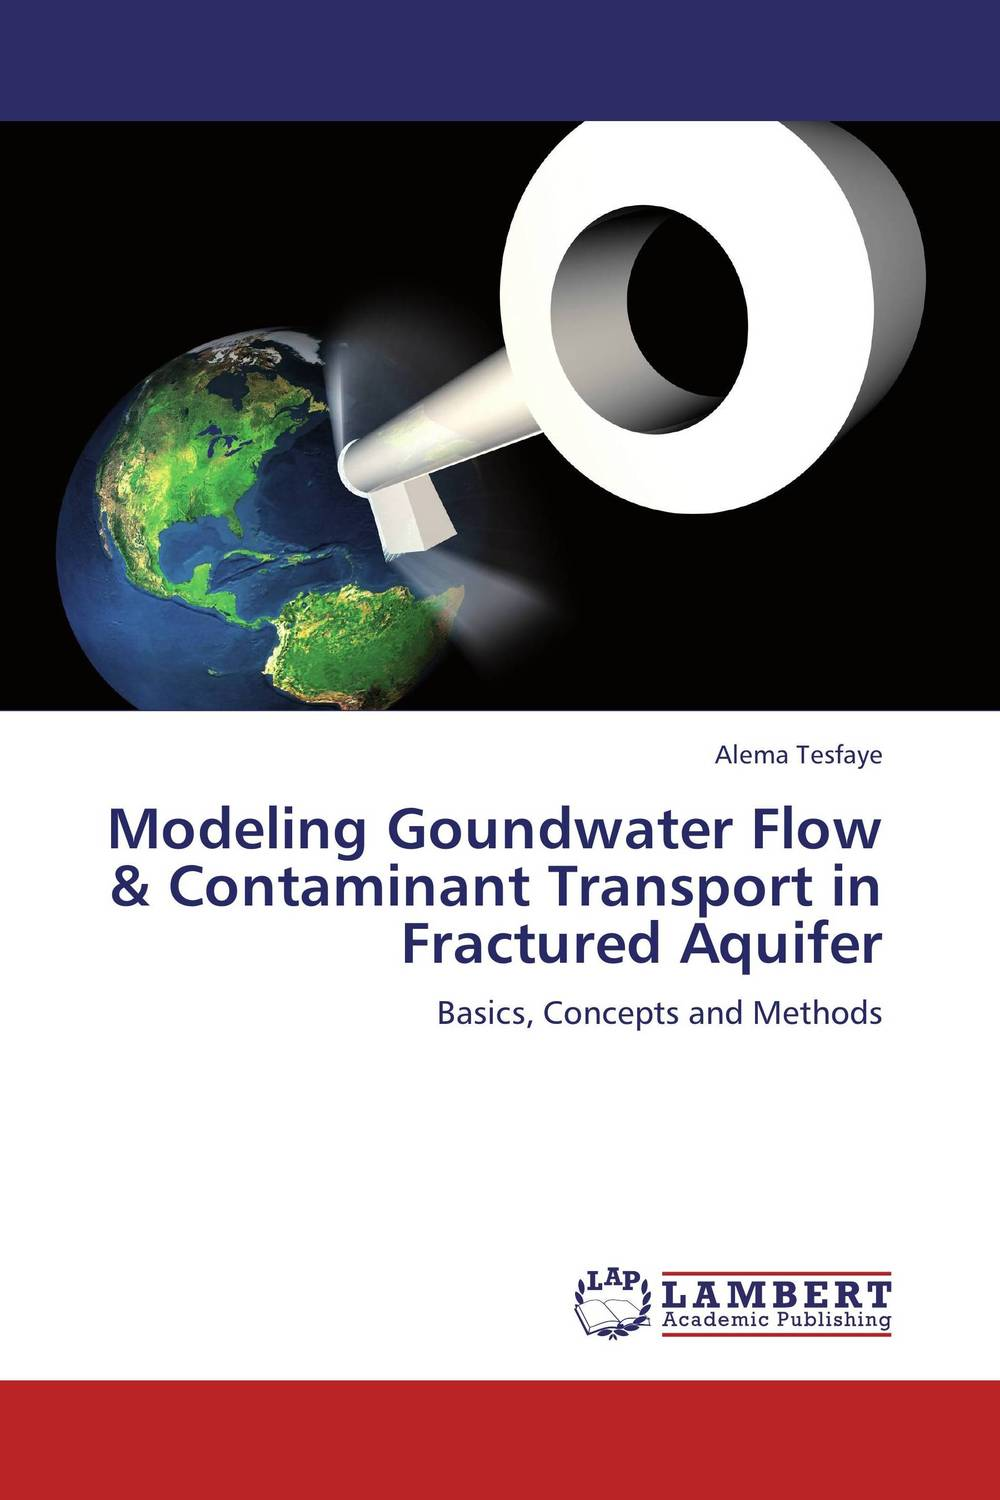 Modeling Goundwater Flow & Contaminant Transport in Fractured Aquifer